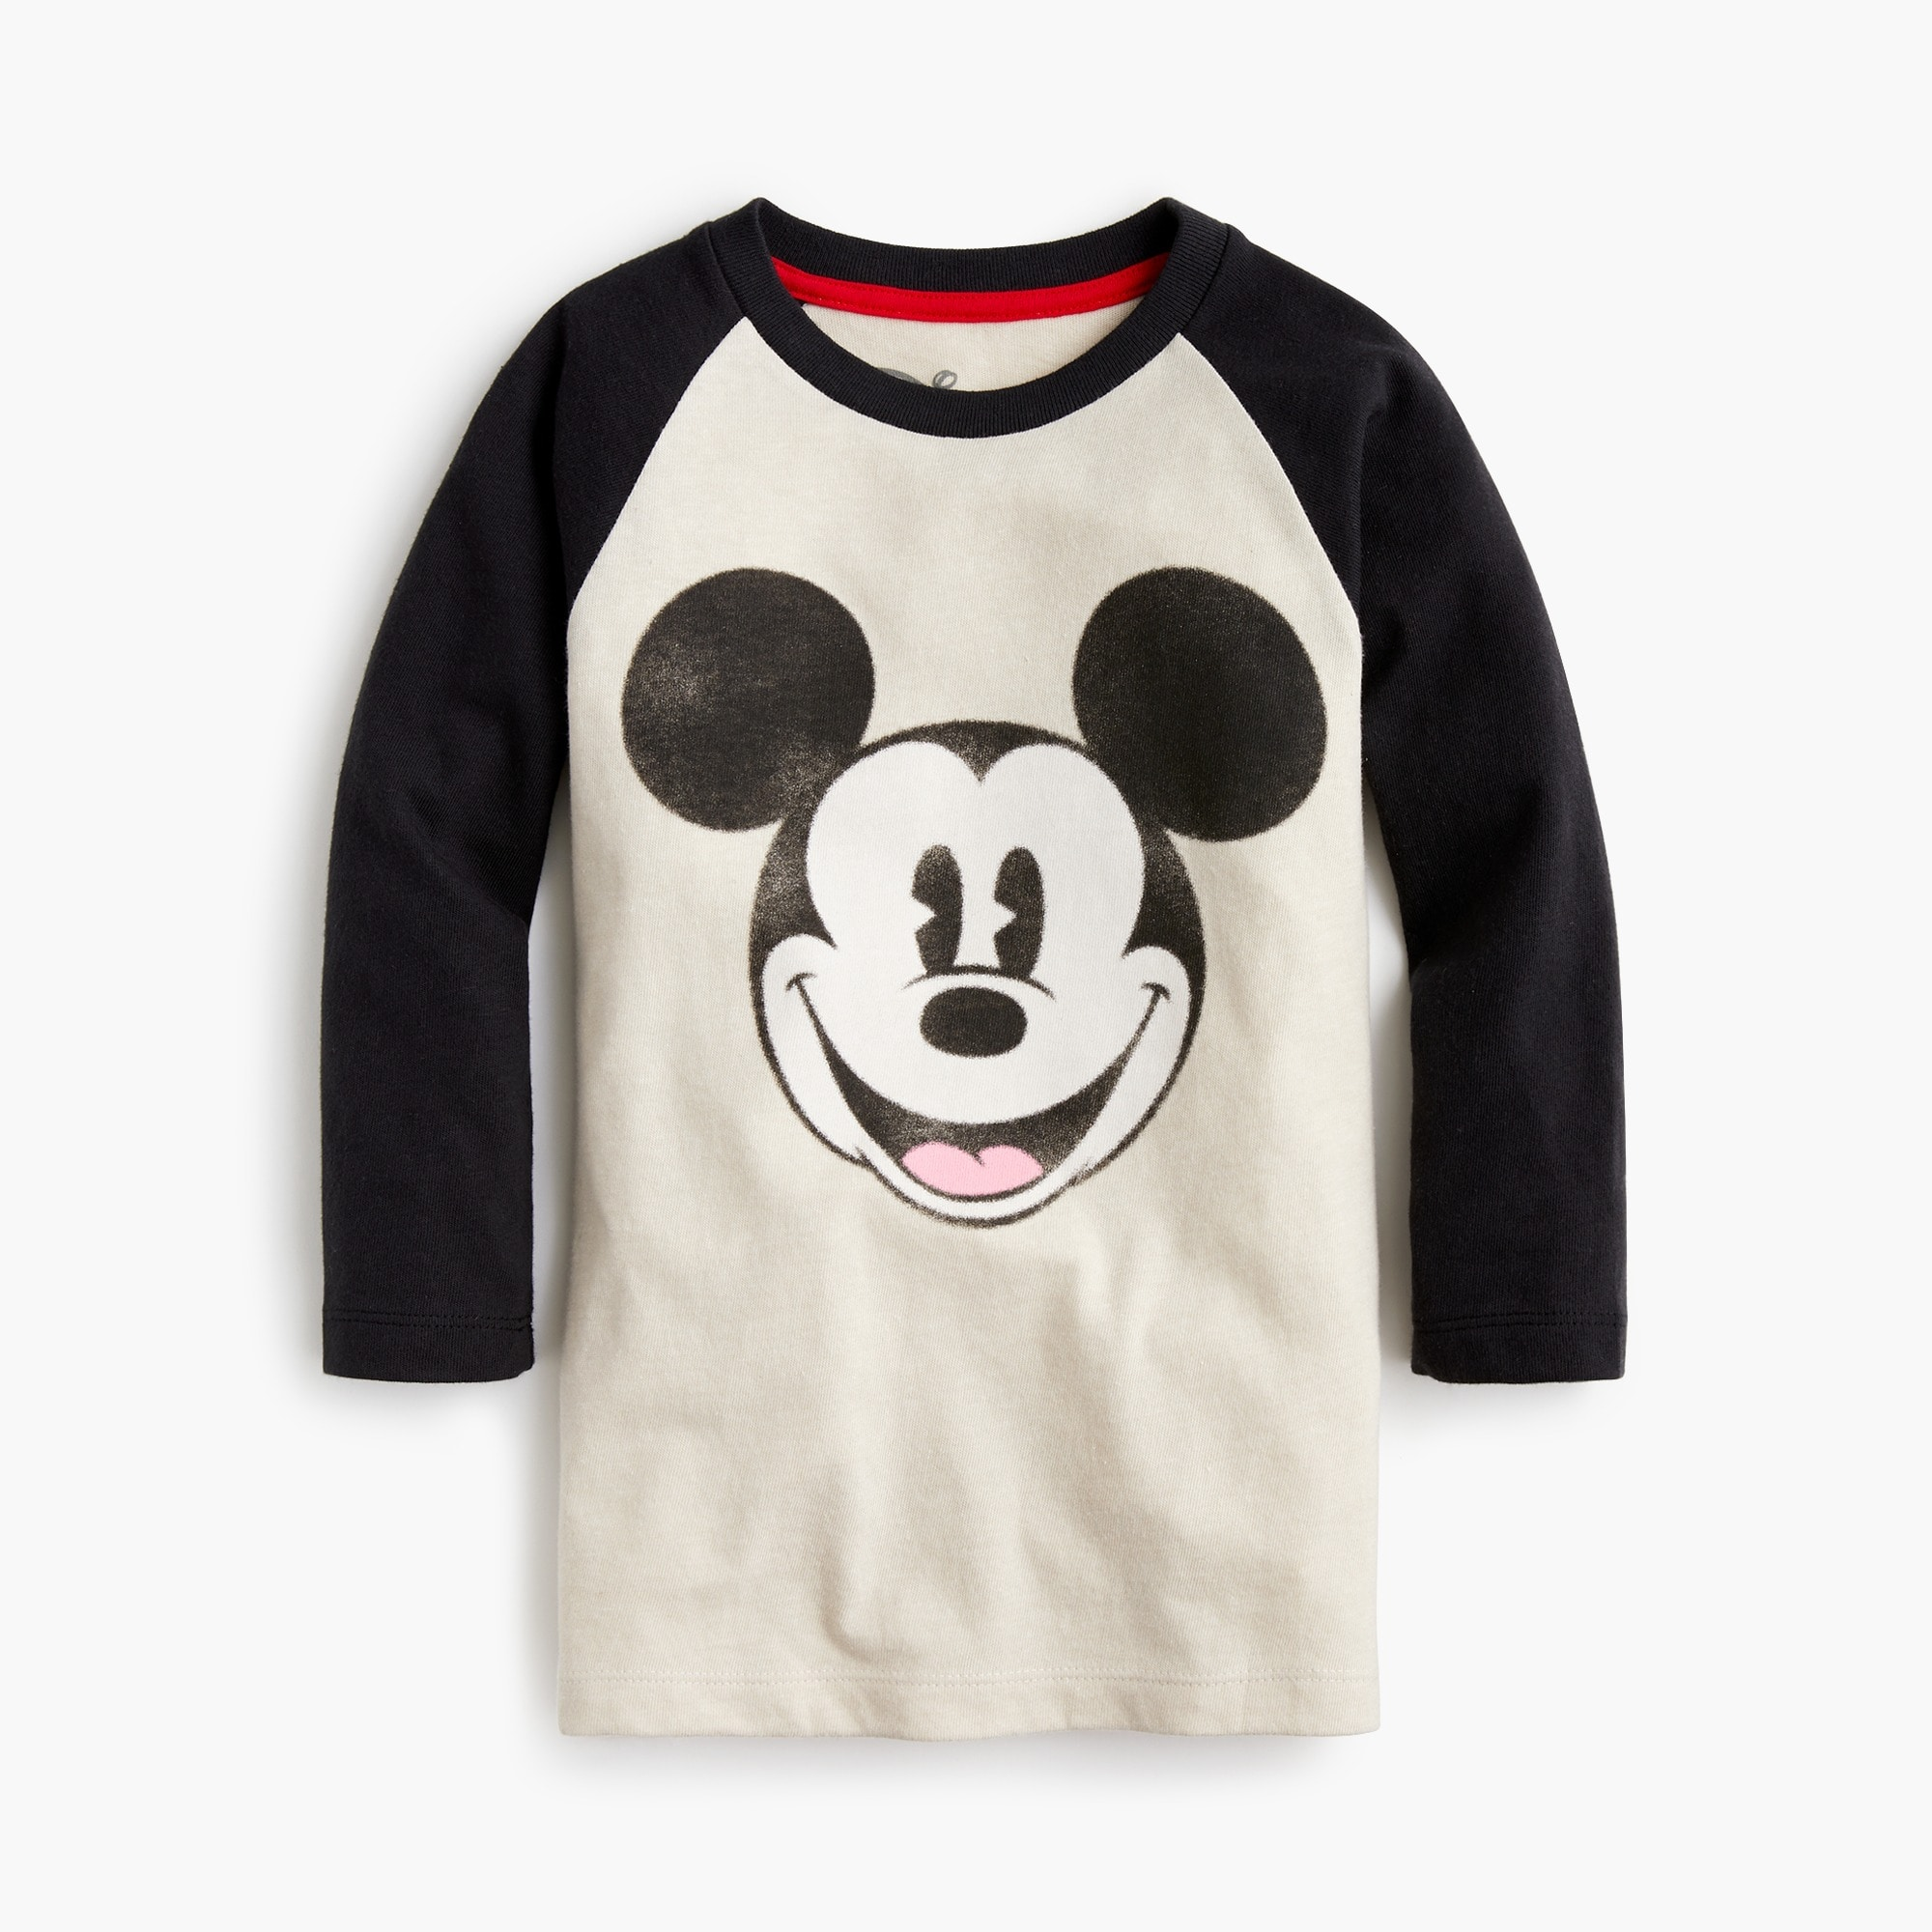 Kids' Disney® for crewcuts Mickey Mouse baseball T-shirt boy new arrivals c